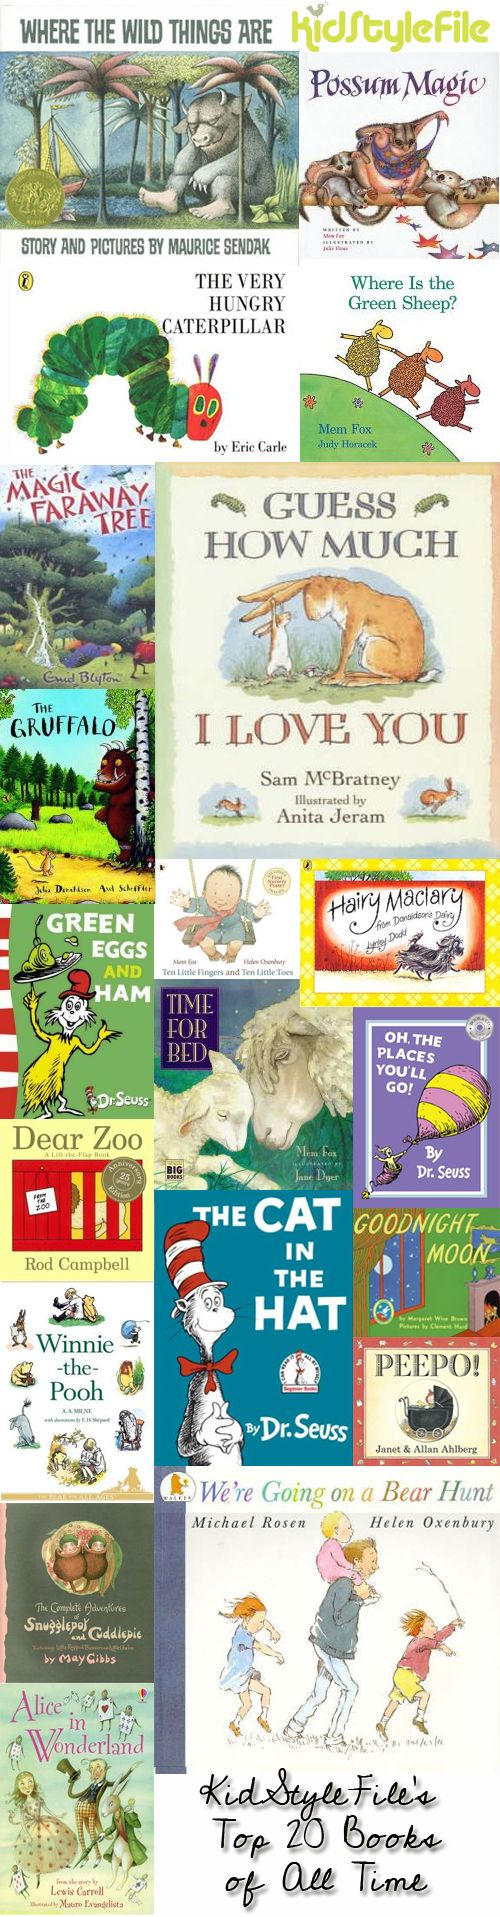 Here at KidStyleFile we know you love books, so of course when we released the KidStyleFile 5th Annual Reader Survey last year we knew it was the perfect vehic